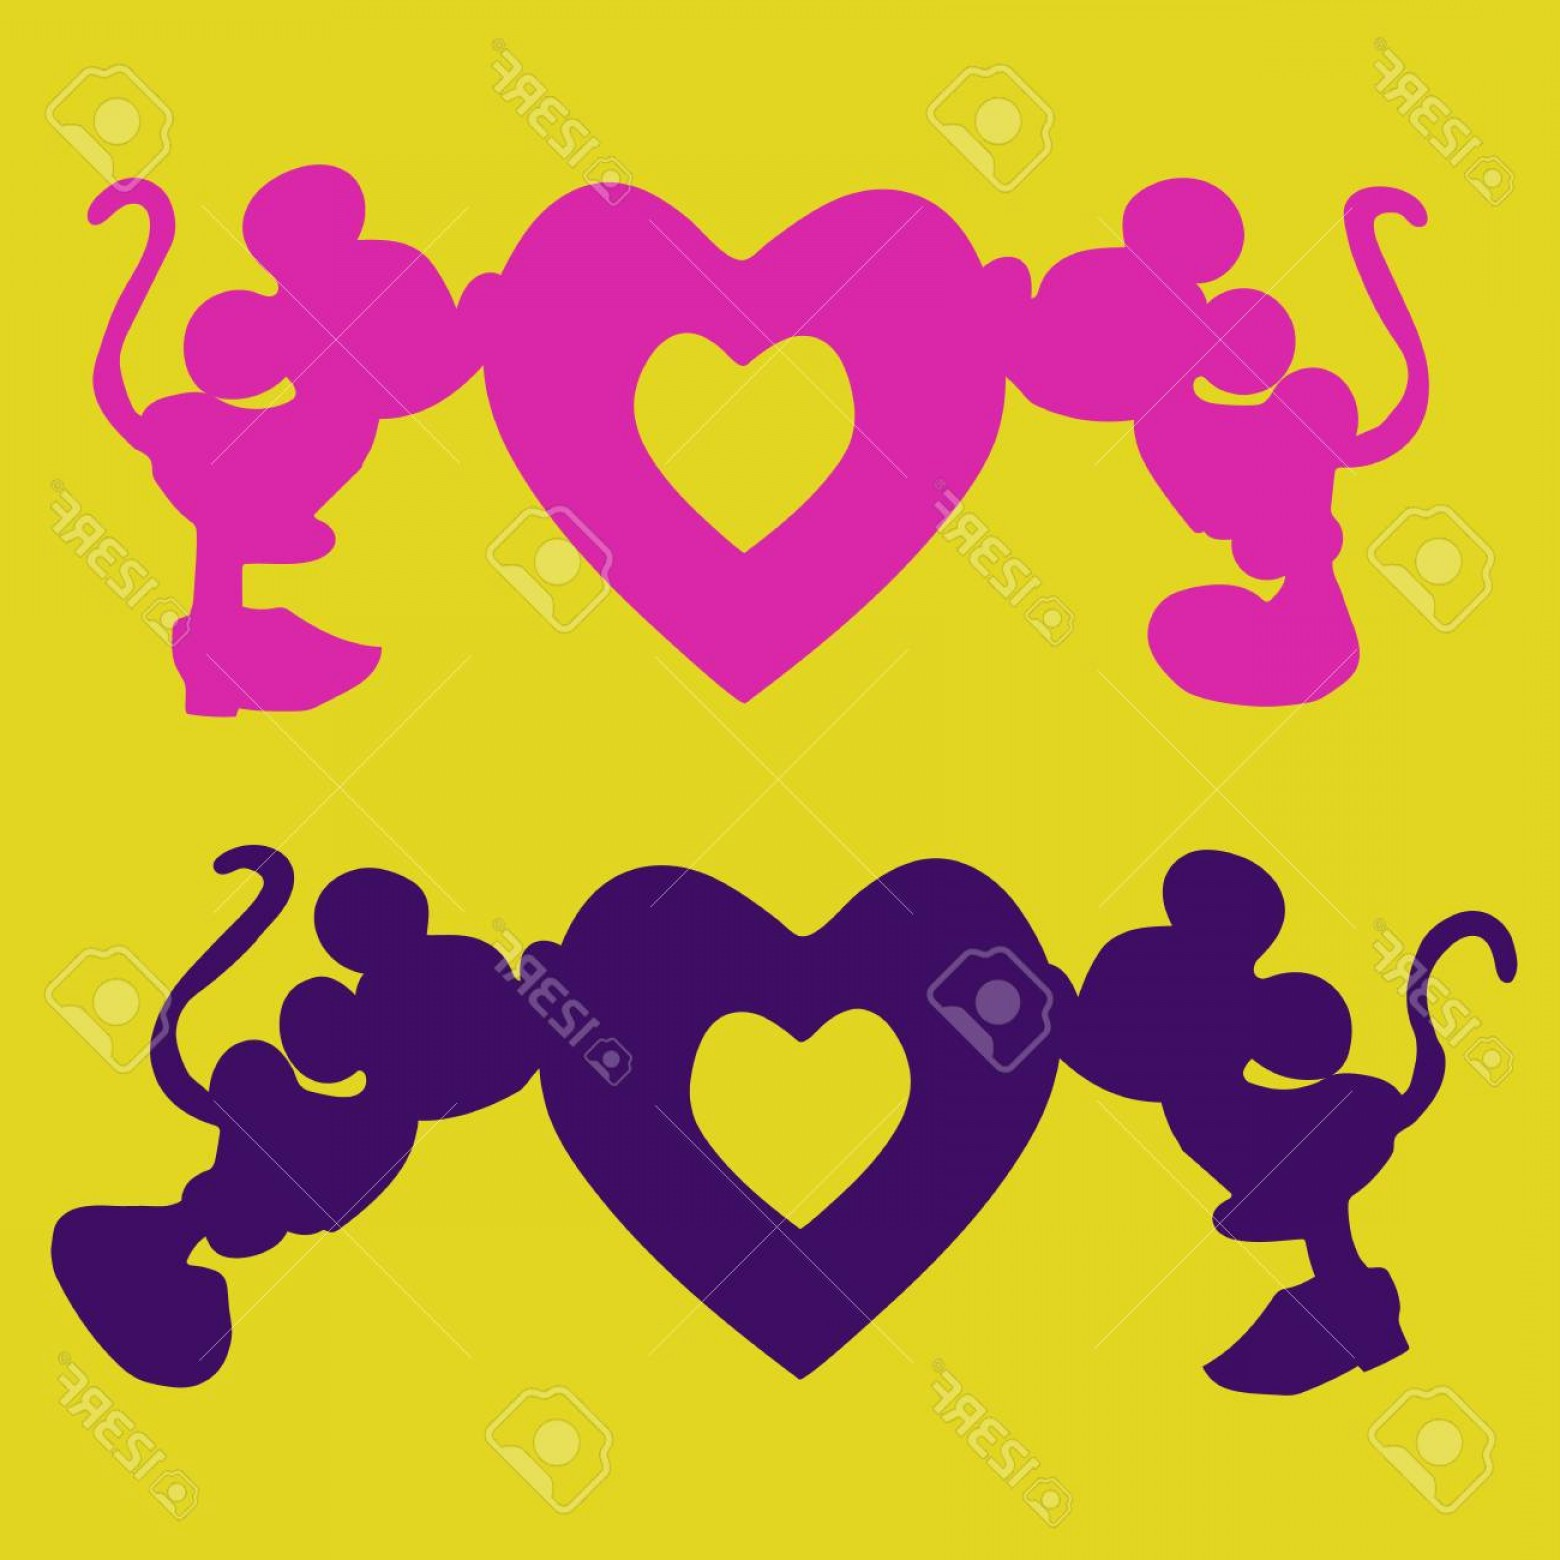 Mickey Vector: Photostock Vector Silhouette Of Mickey Mouse Boy And Girl Kiss The Heart An Illustration For Valentine S Day On A Yell